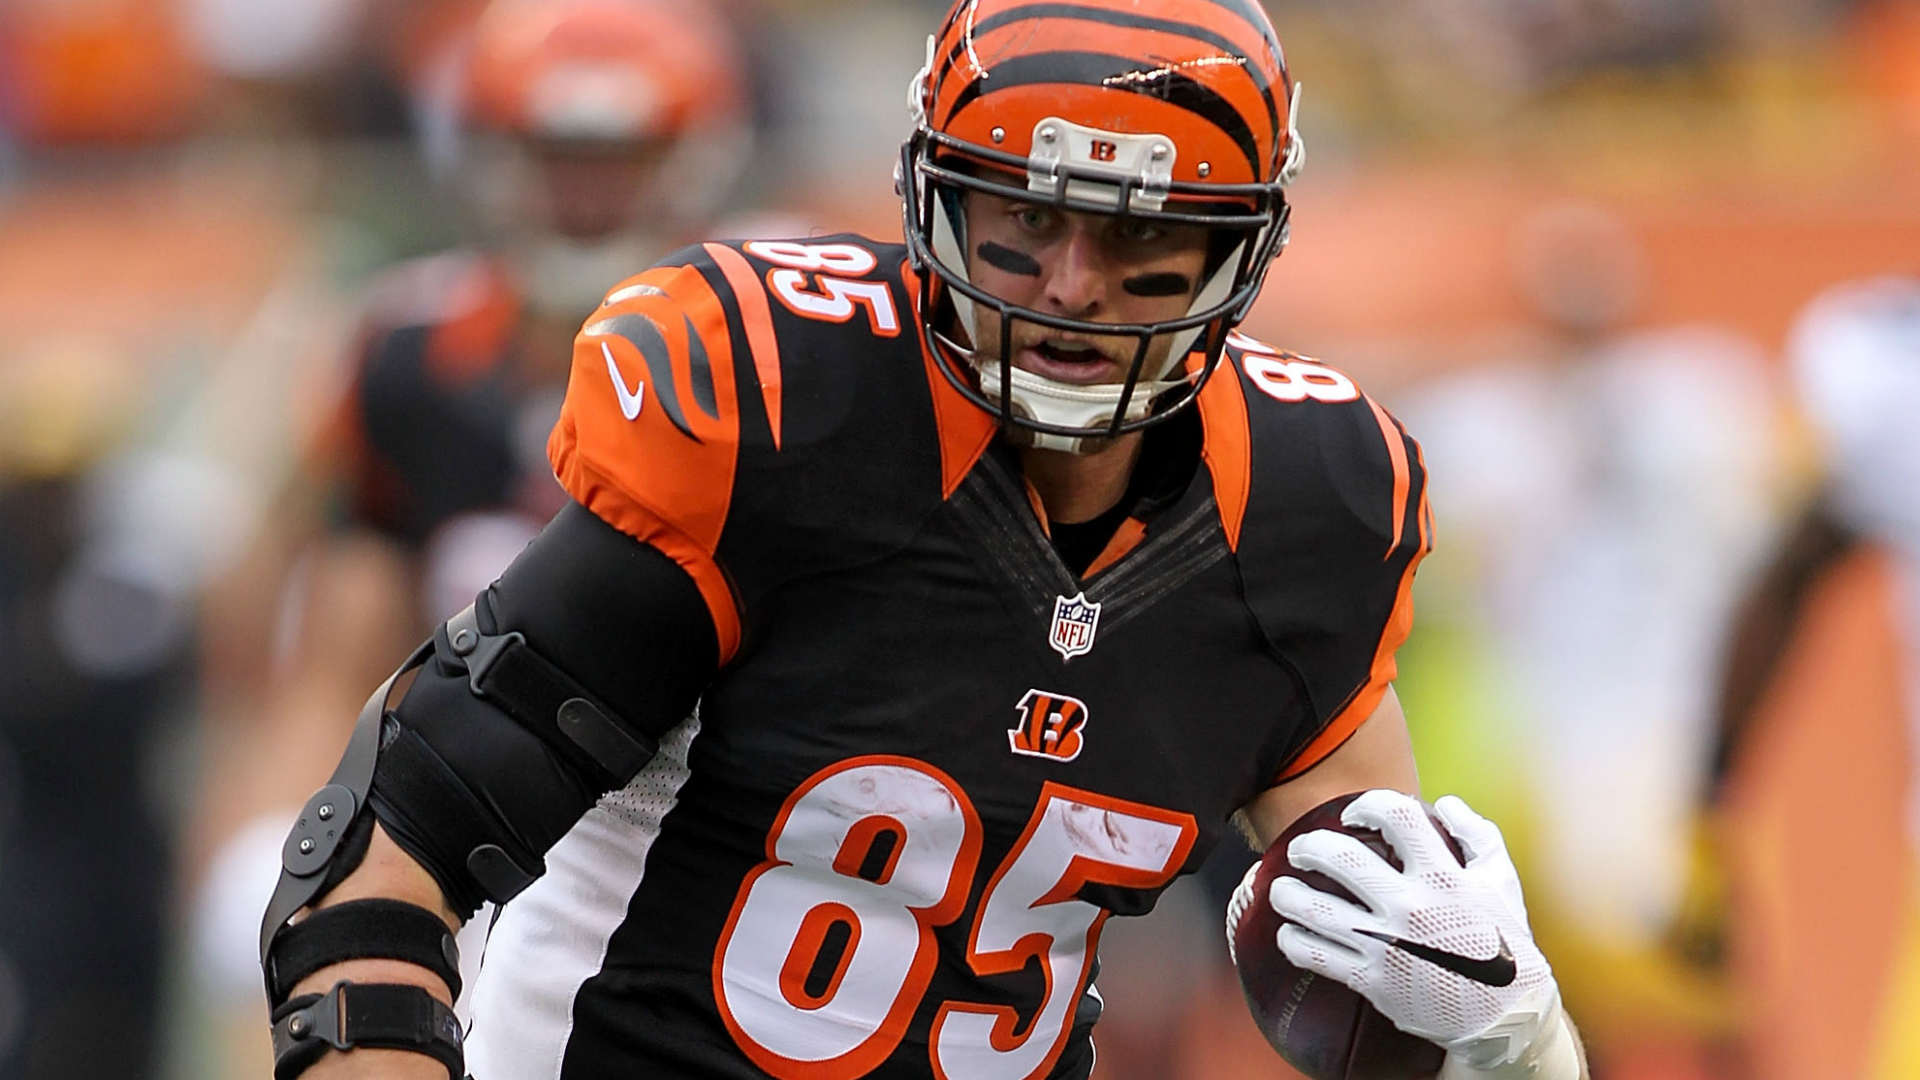 Bengals Pro Bowl TE Tyler Eifert expected to miss 3 months after